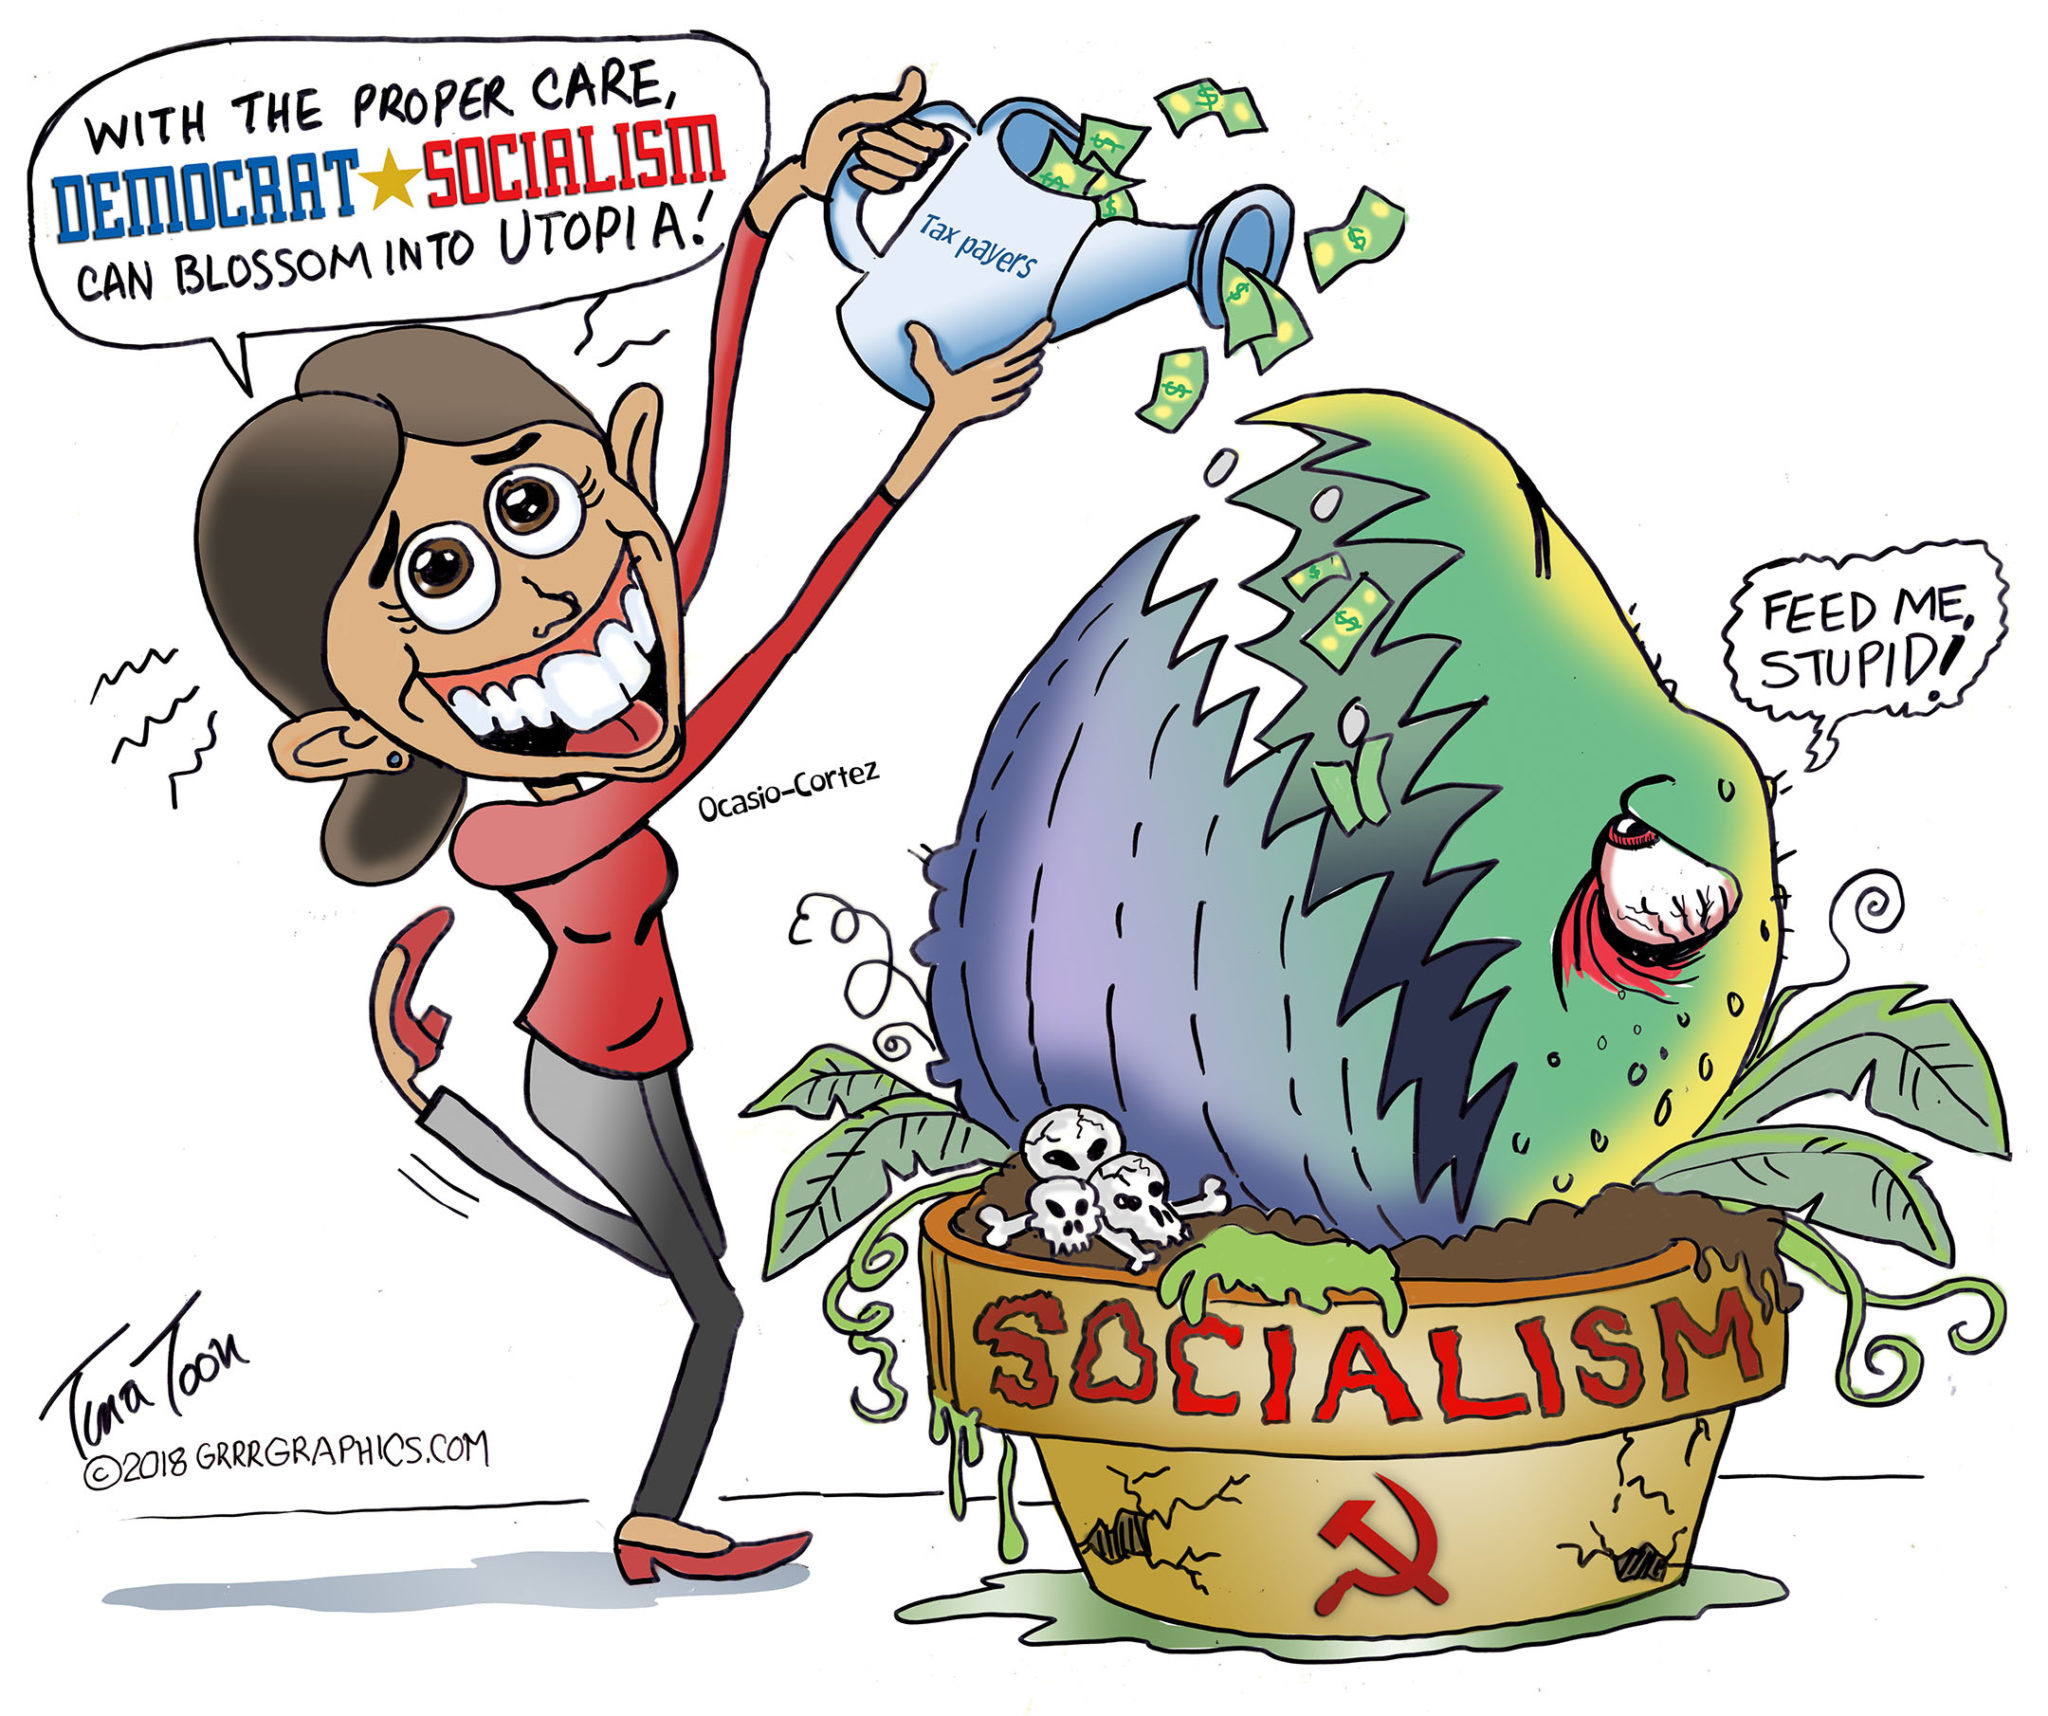 cortez_cartoon_tina.jpg